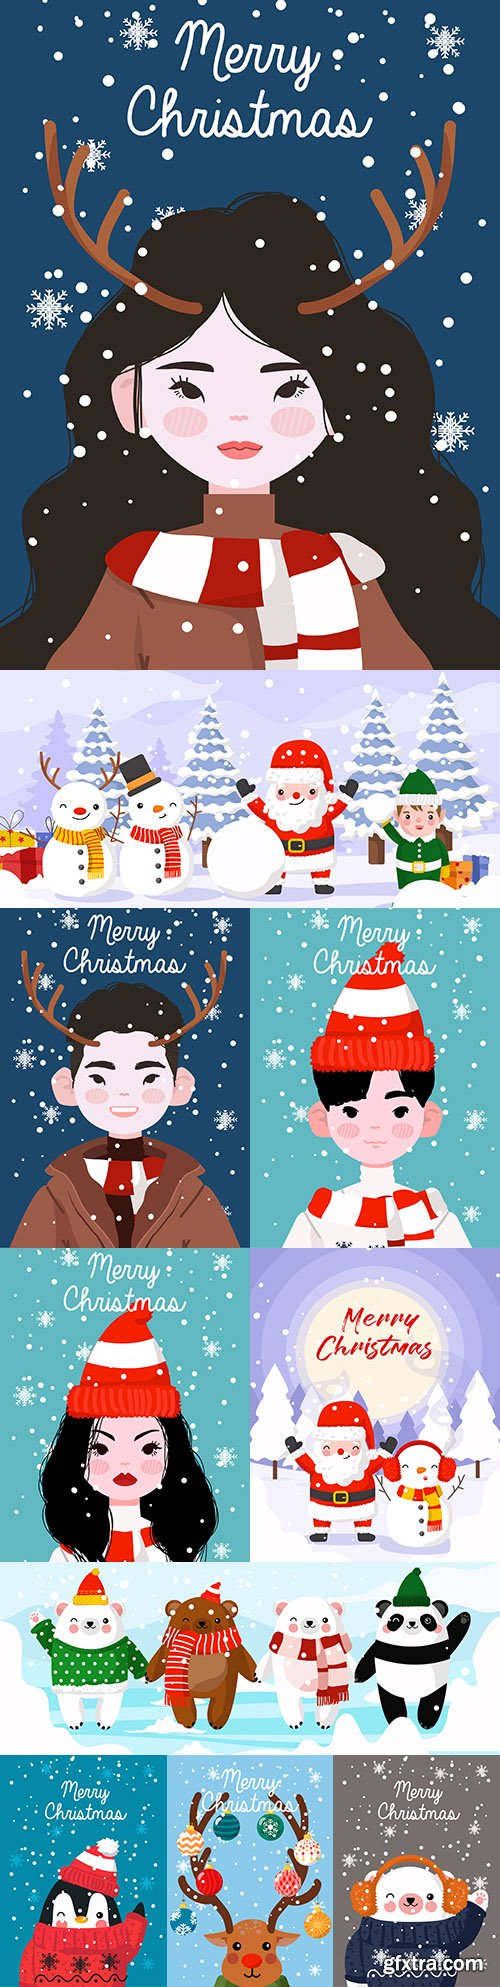 Merry Christmas themed painted flat design illustrations